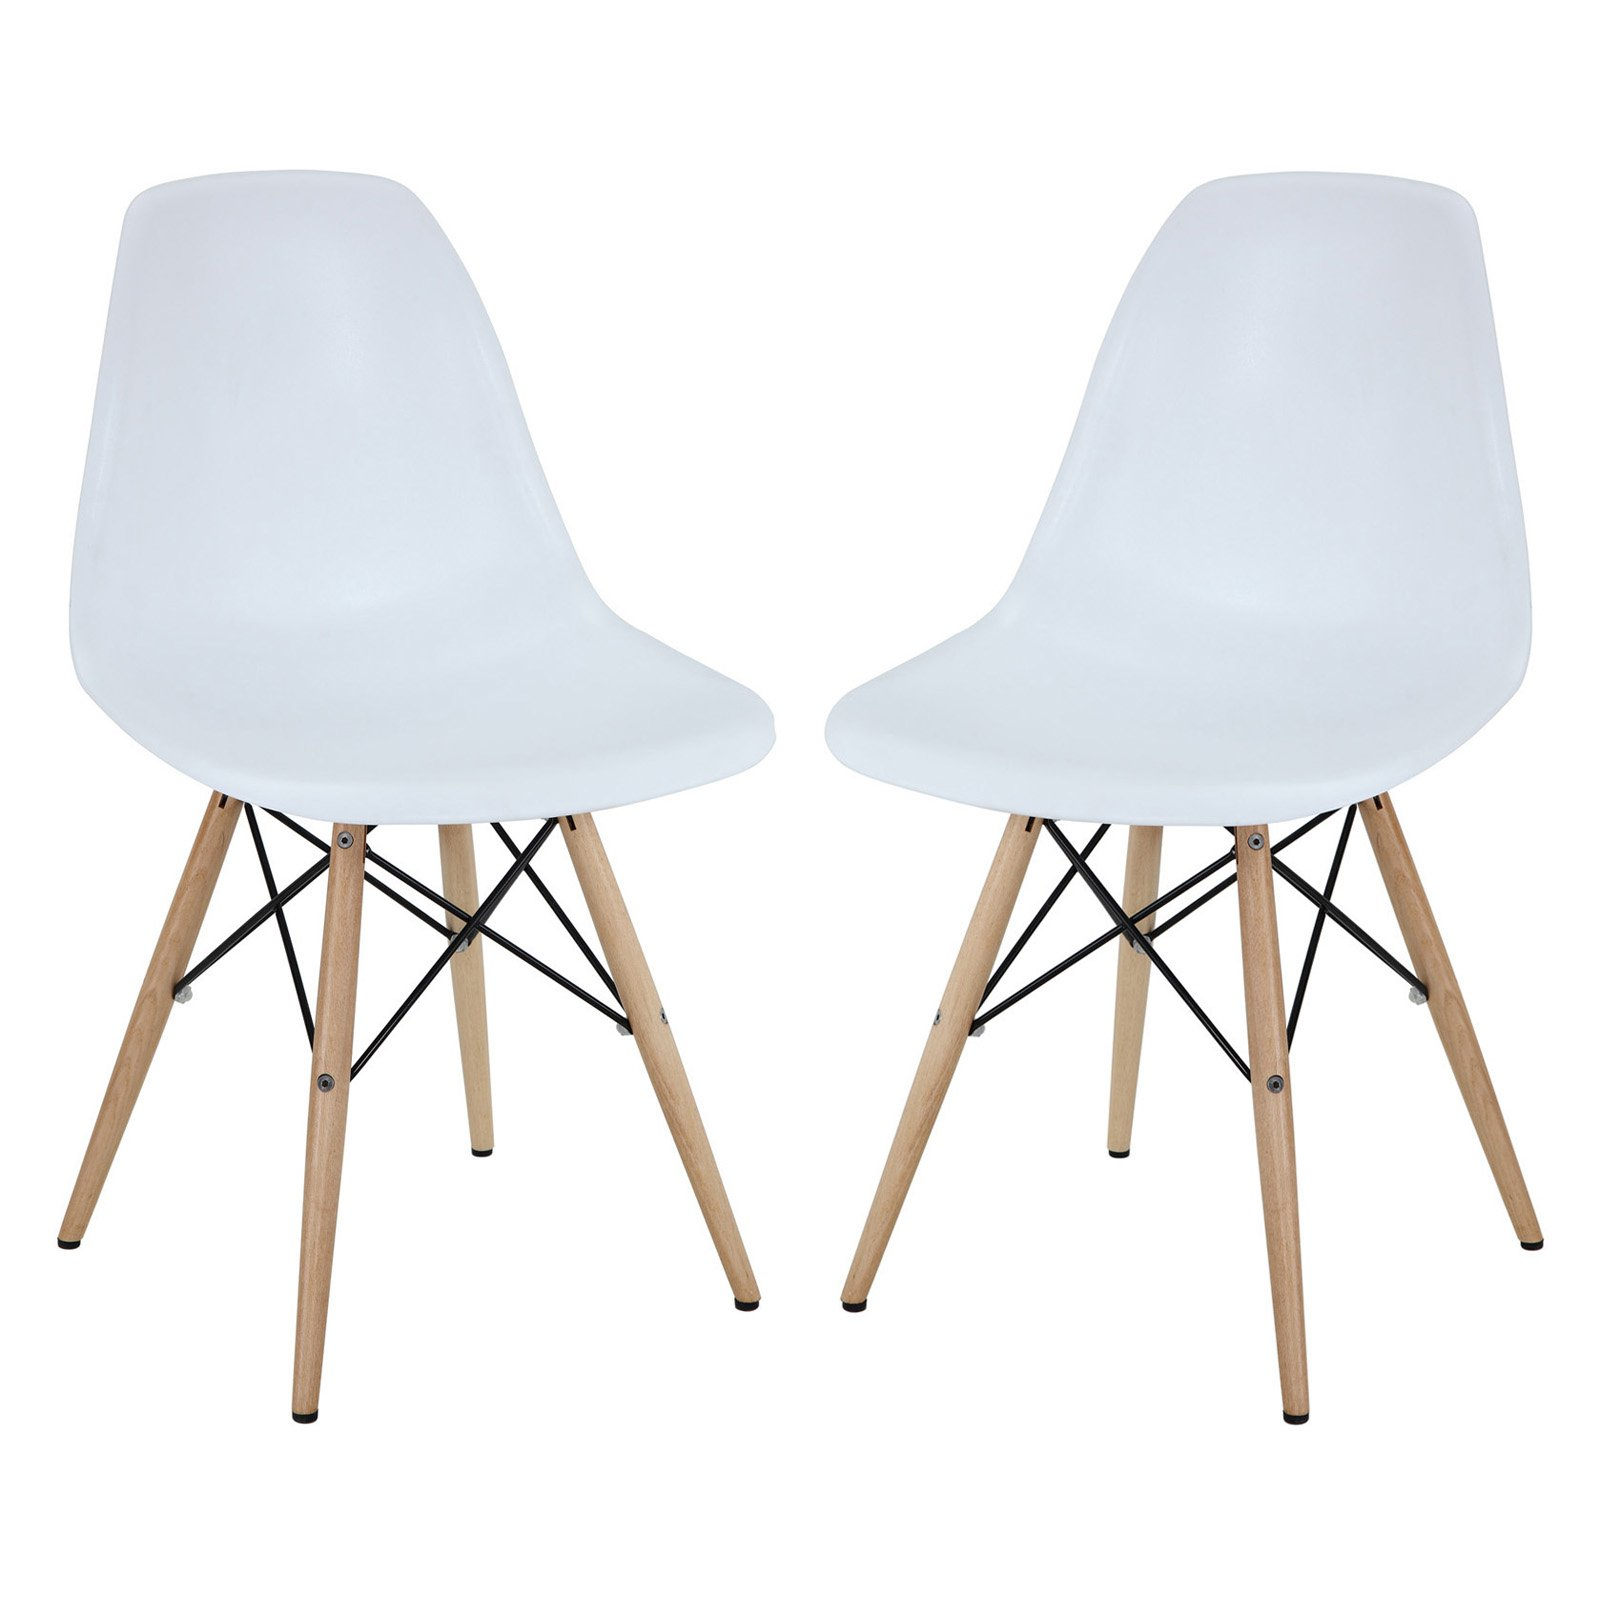 Modway Pyramid Indoor Or Outdoor Dining Side Chair Set Of 2 In White